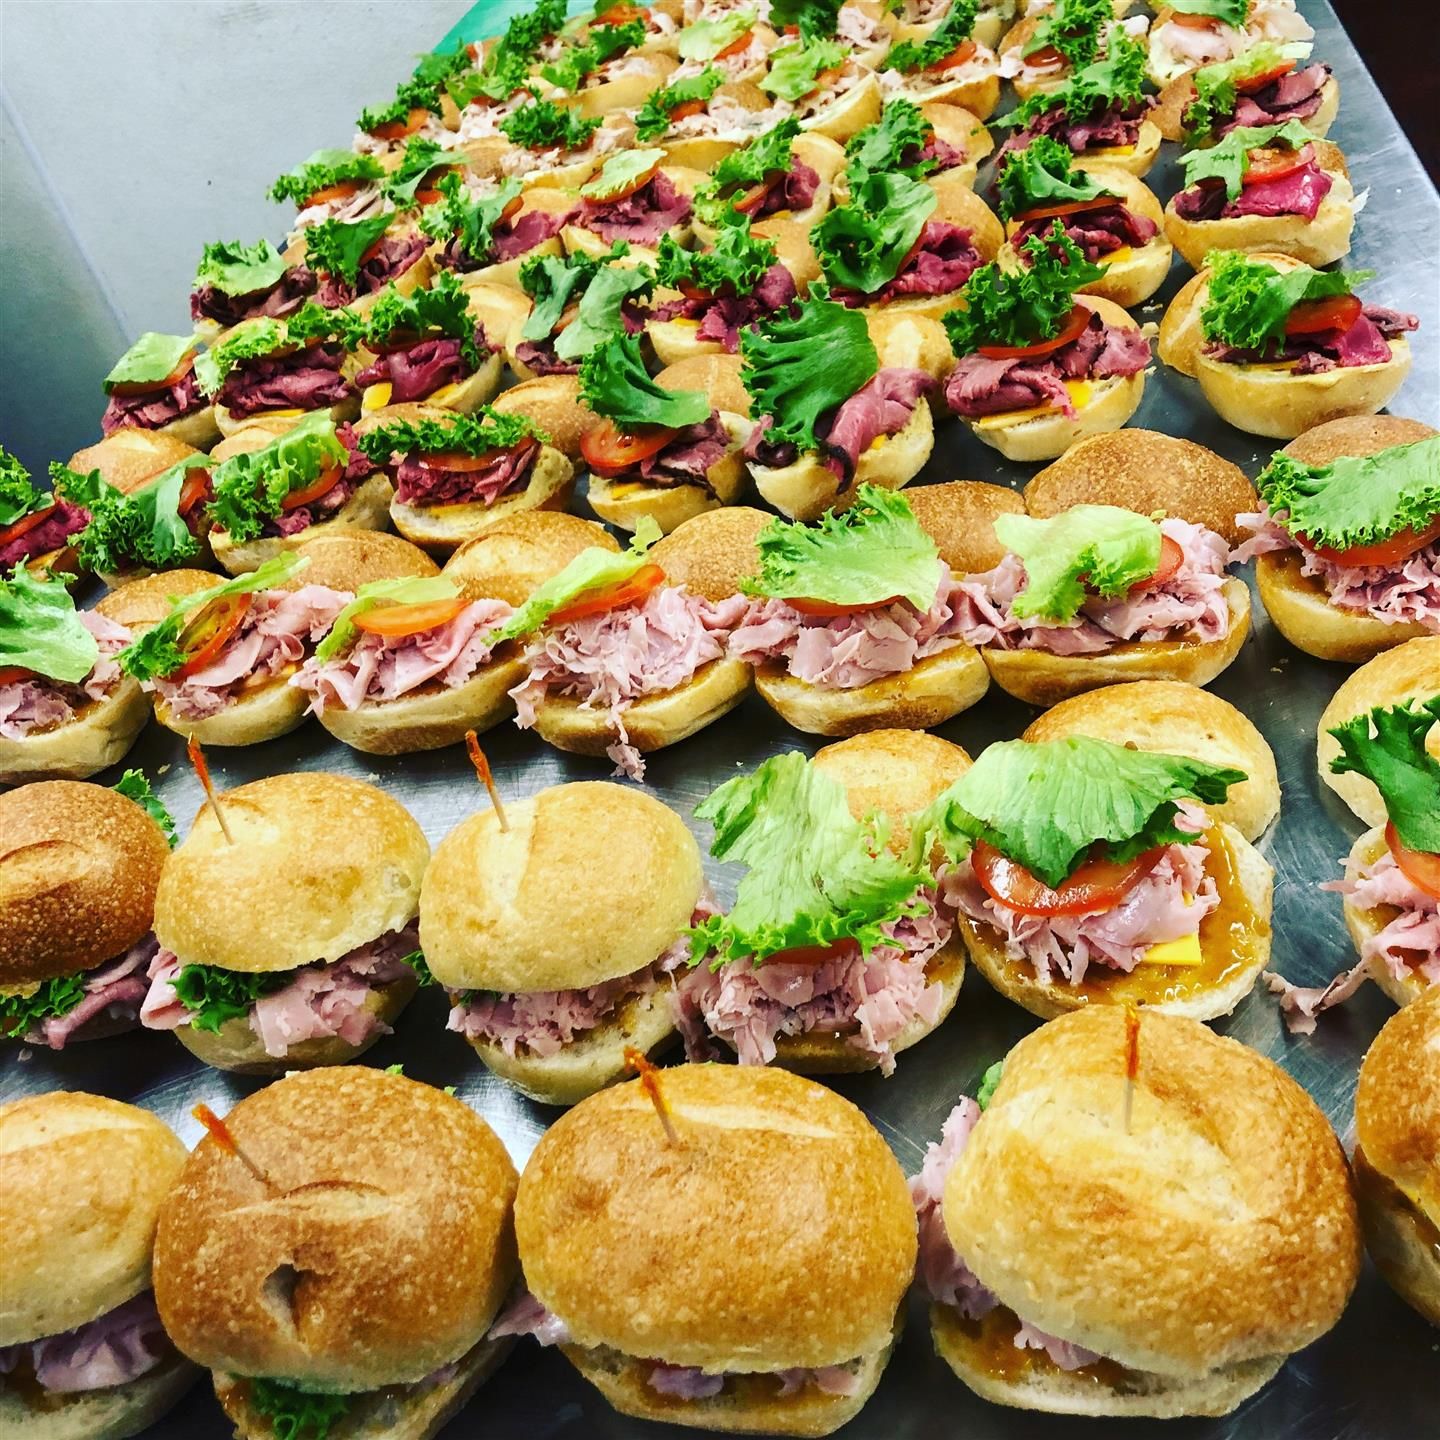 rows of sandwiches with meat and lettuce